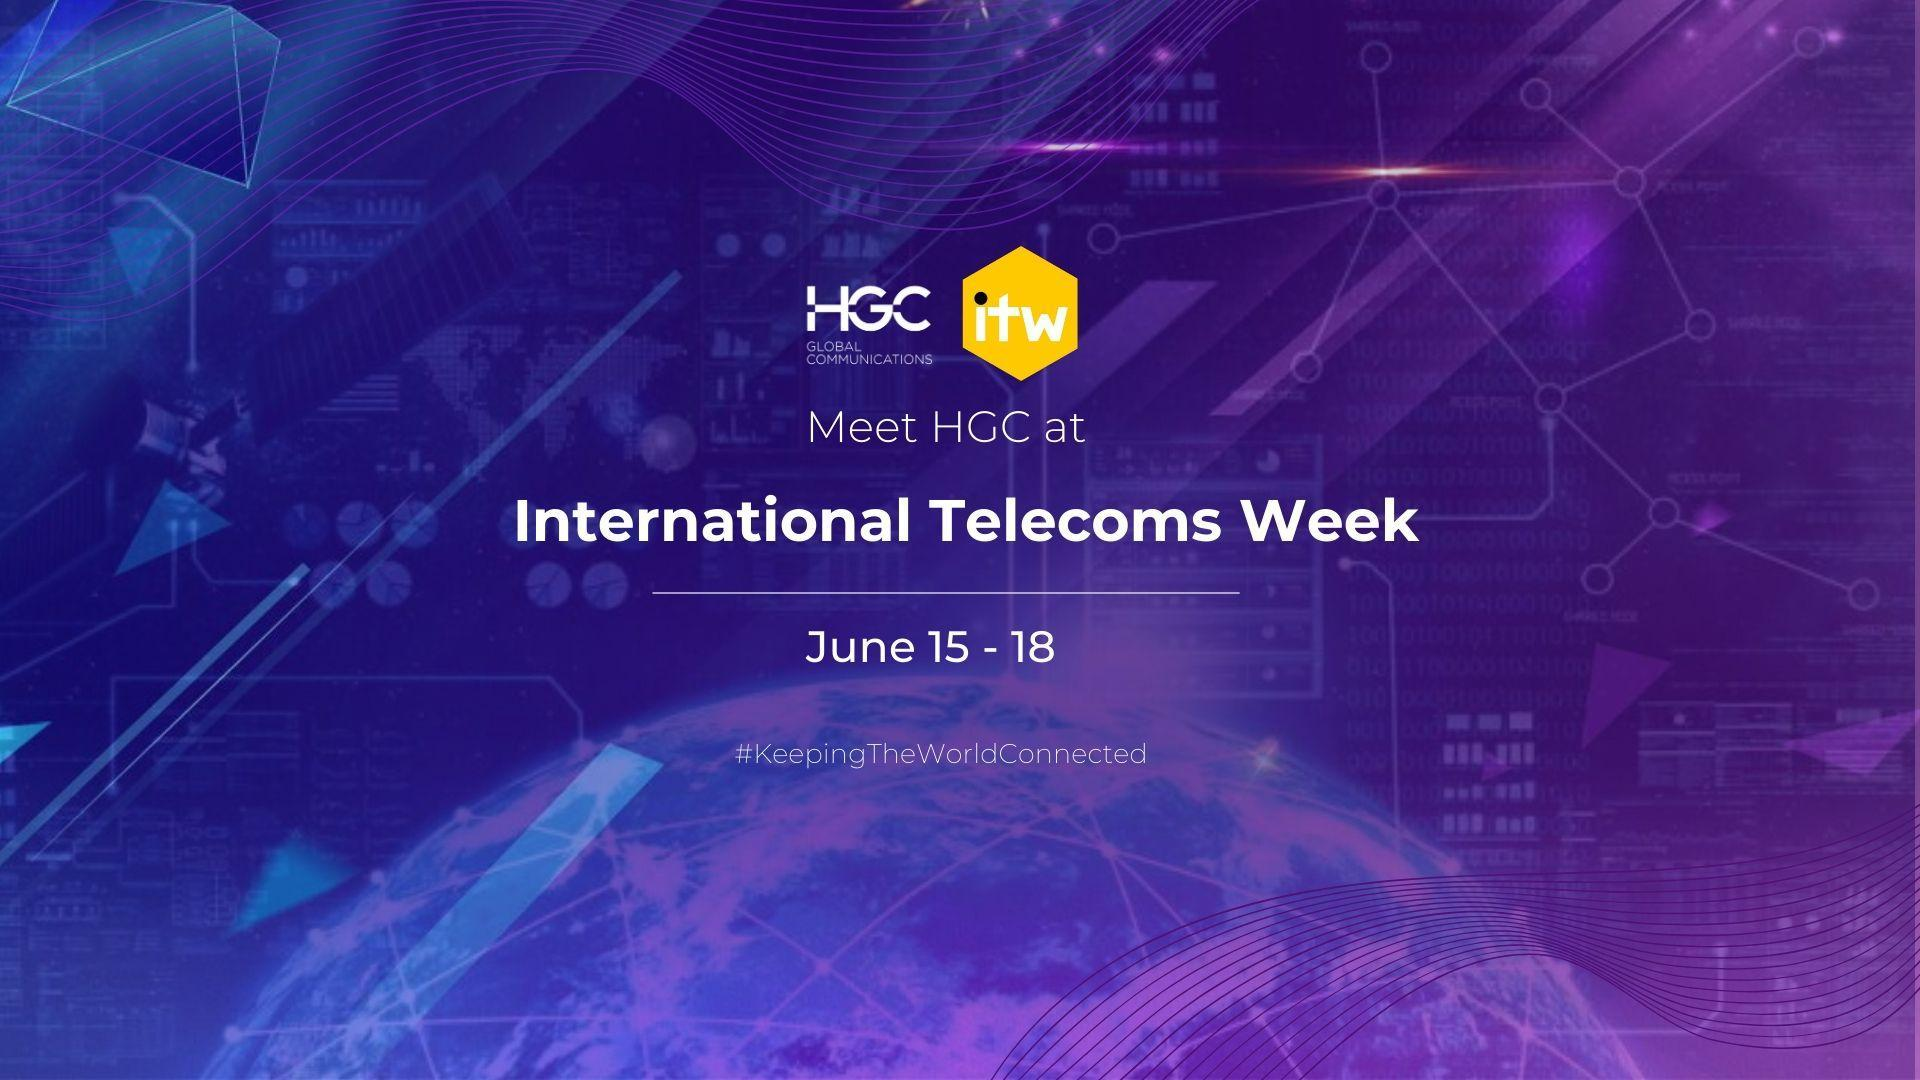 Hgc International Telecoms Week 2020 Homepage Banner